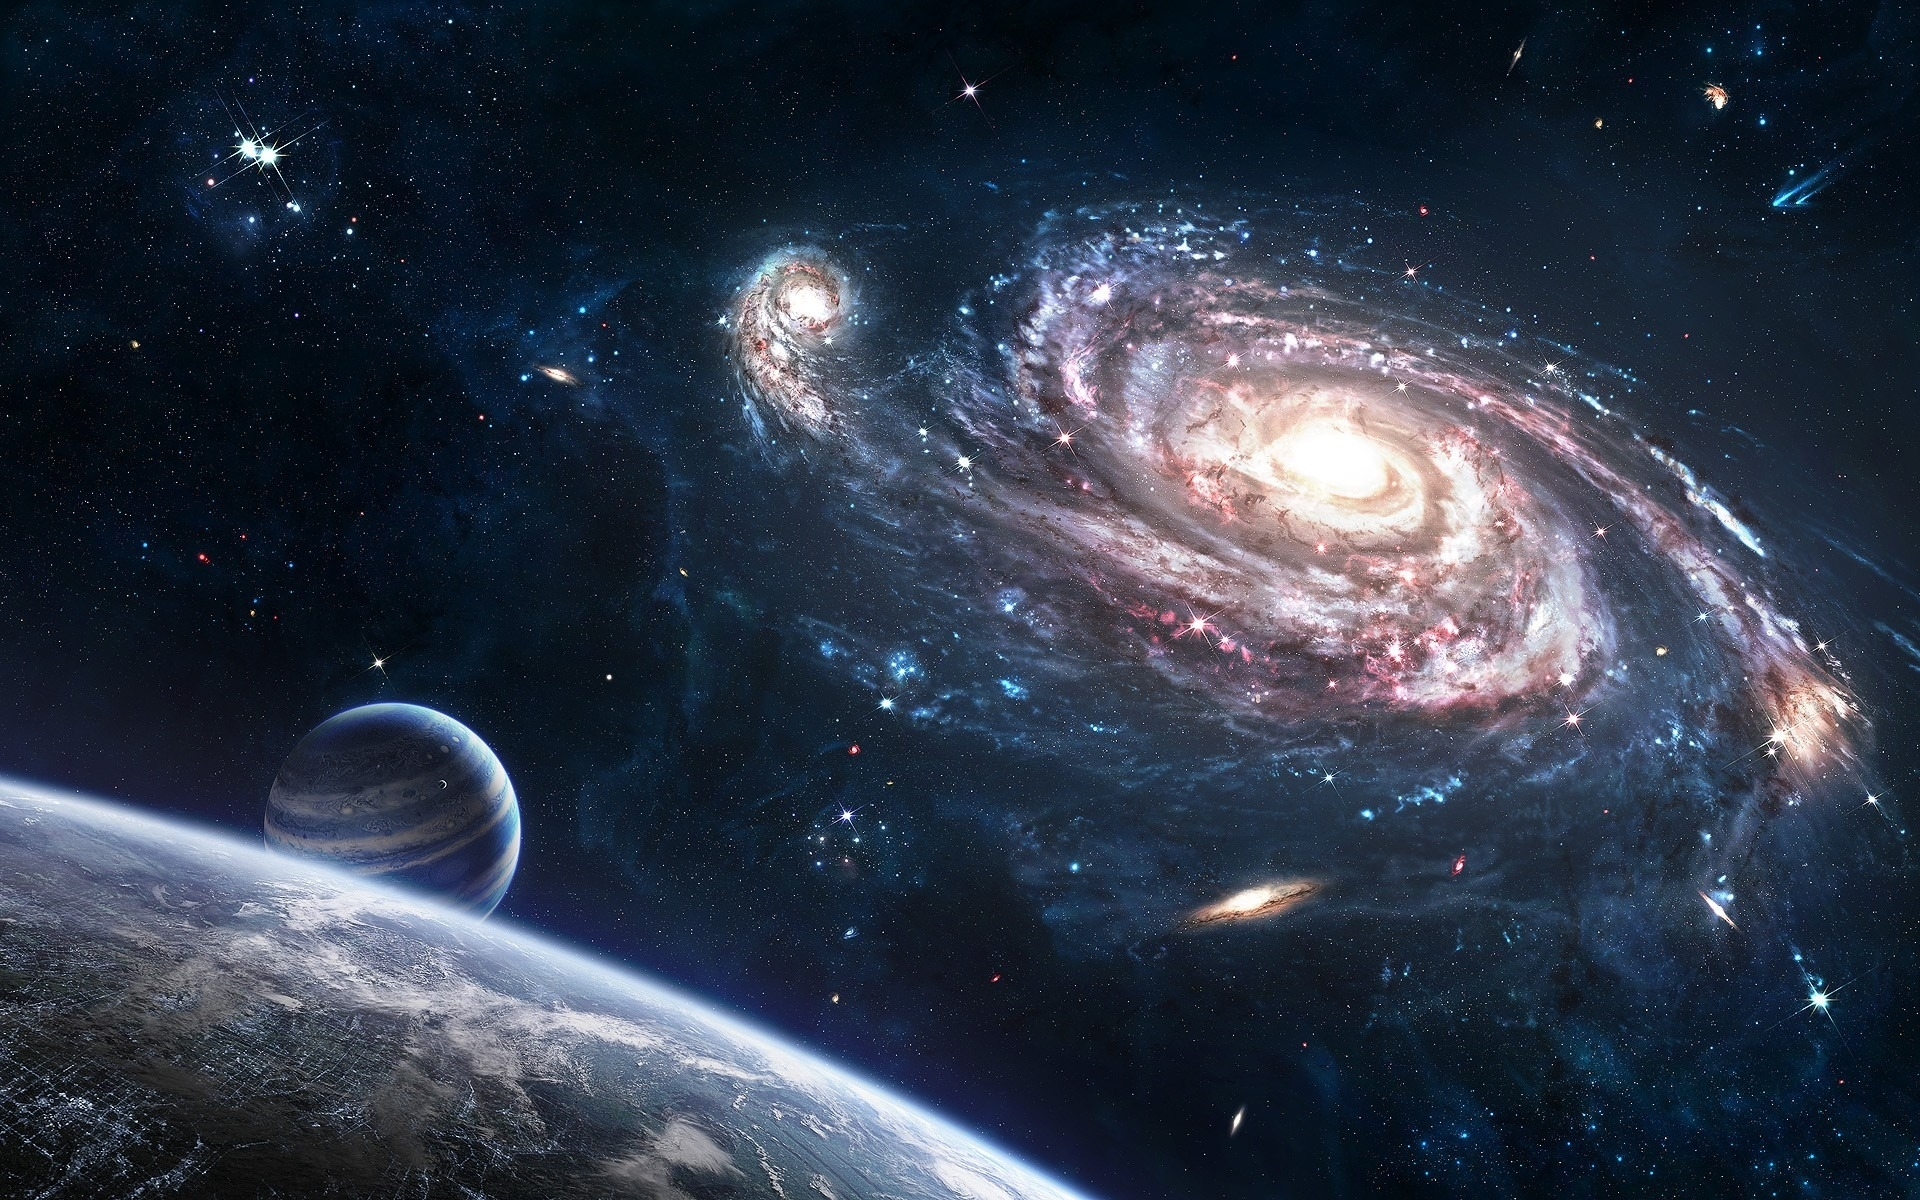 real pictures of planets and space - photo #1